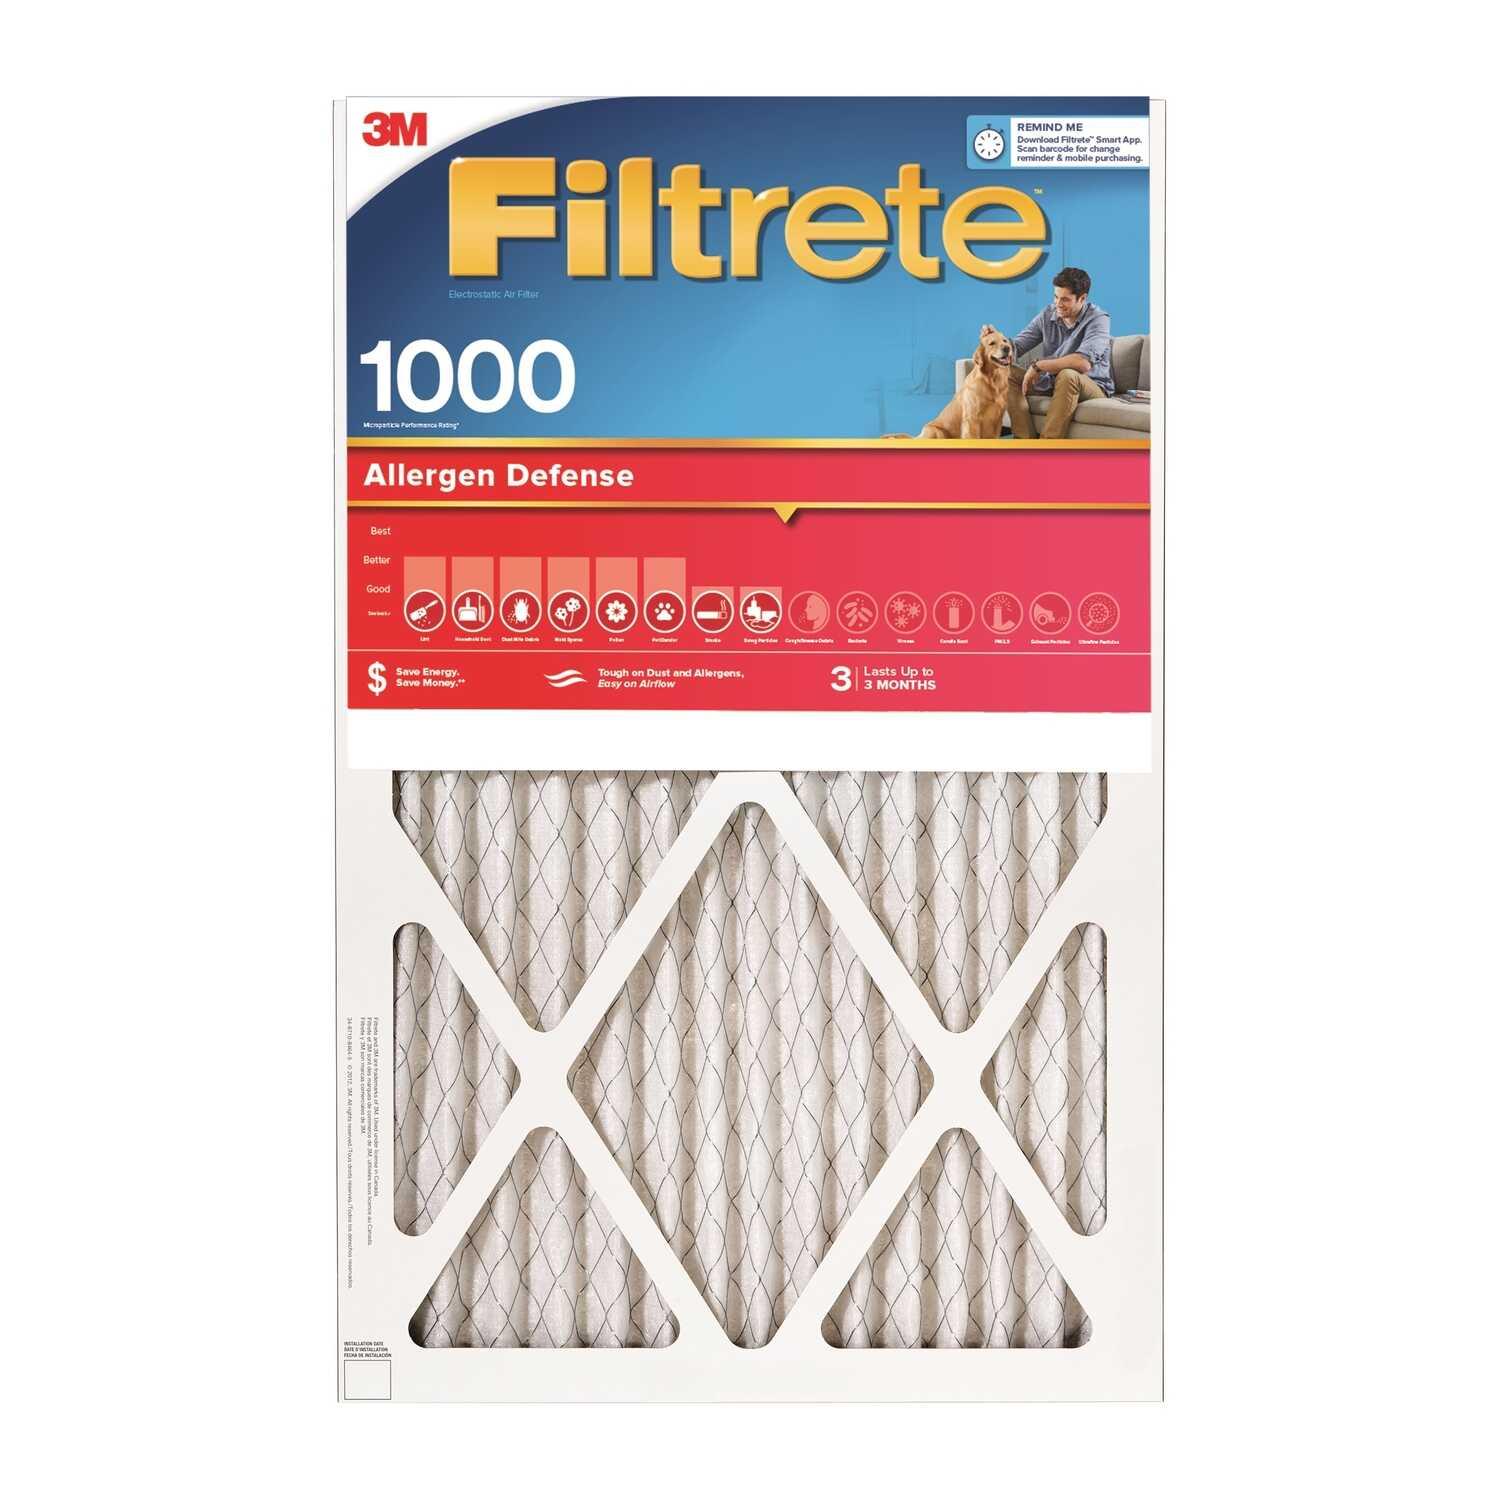 3M  Filtrete  16 in. W x 25 in. H x 1 in. D 11 MERV Pleated Air Filter